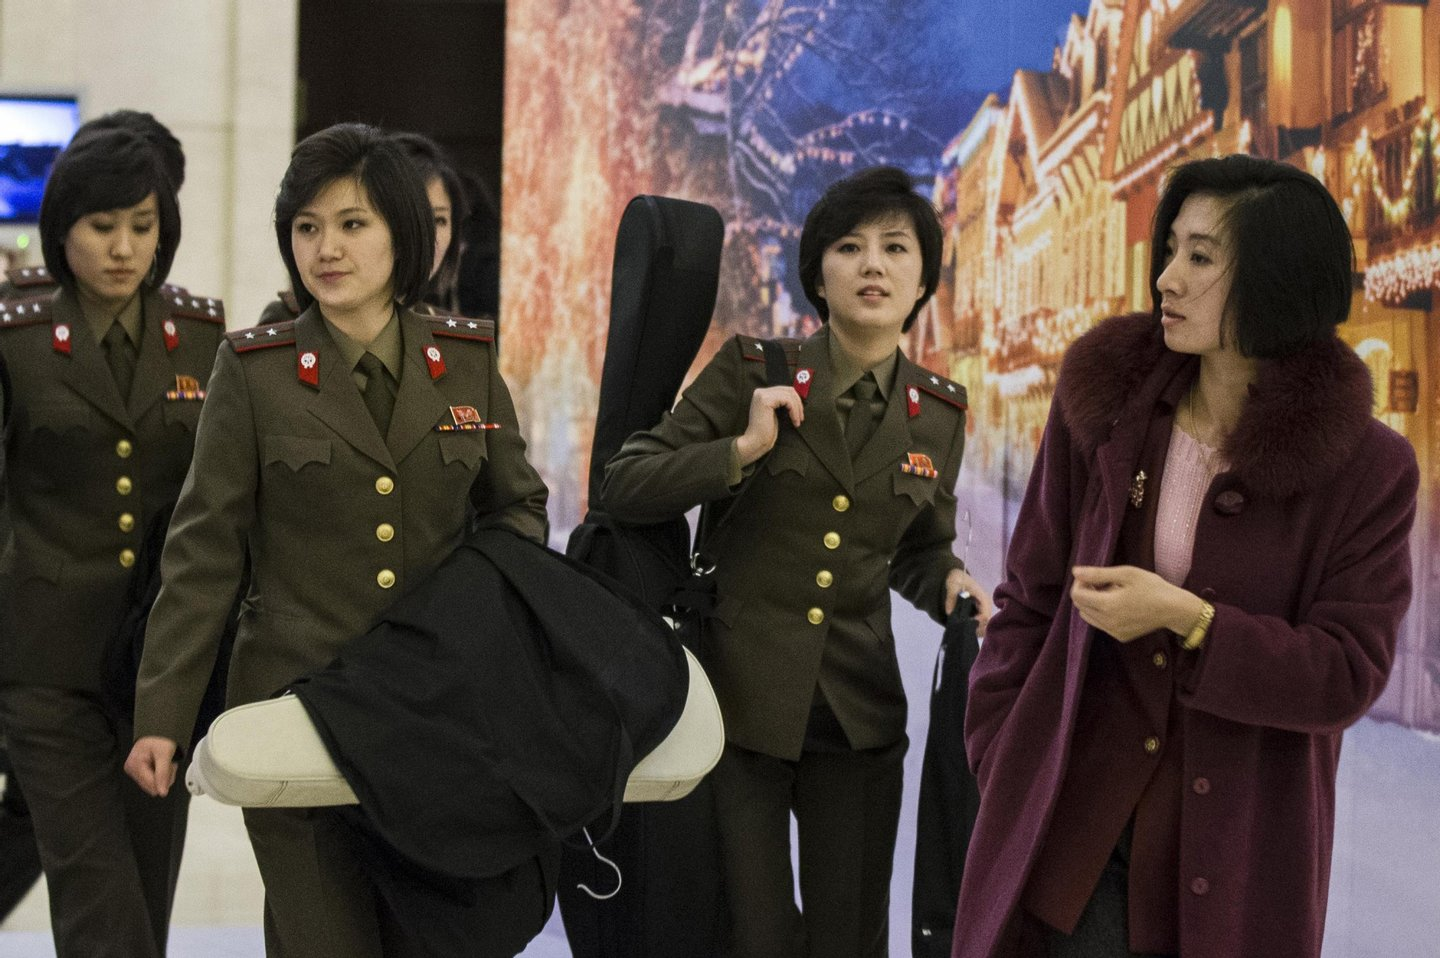 This picture taken on December 10, 2015 shows members of North Korea's Moranbong band walking out of their hotel in Beijing. North Korea's premier pop group, the all-girl Moranbong band formed by leader Kim Jong-Un, is electrifying audiences in China in shows aimed at harmonising out-of-tune ties between the traditional allies, reports and the venue said on December 9 -- but tickets are not available to the public. CHINA OUT AFP PHOTO / AFP / STR (Photo credit should read STR/AFP/Getty Images)